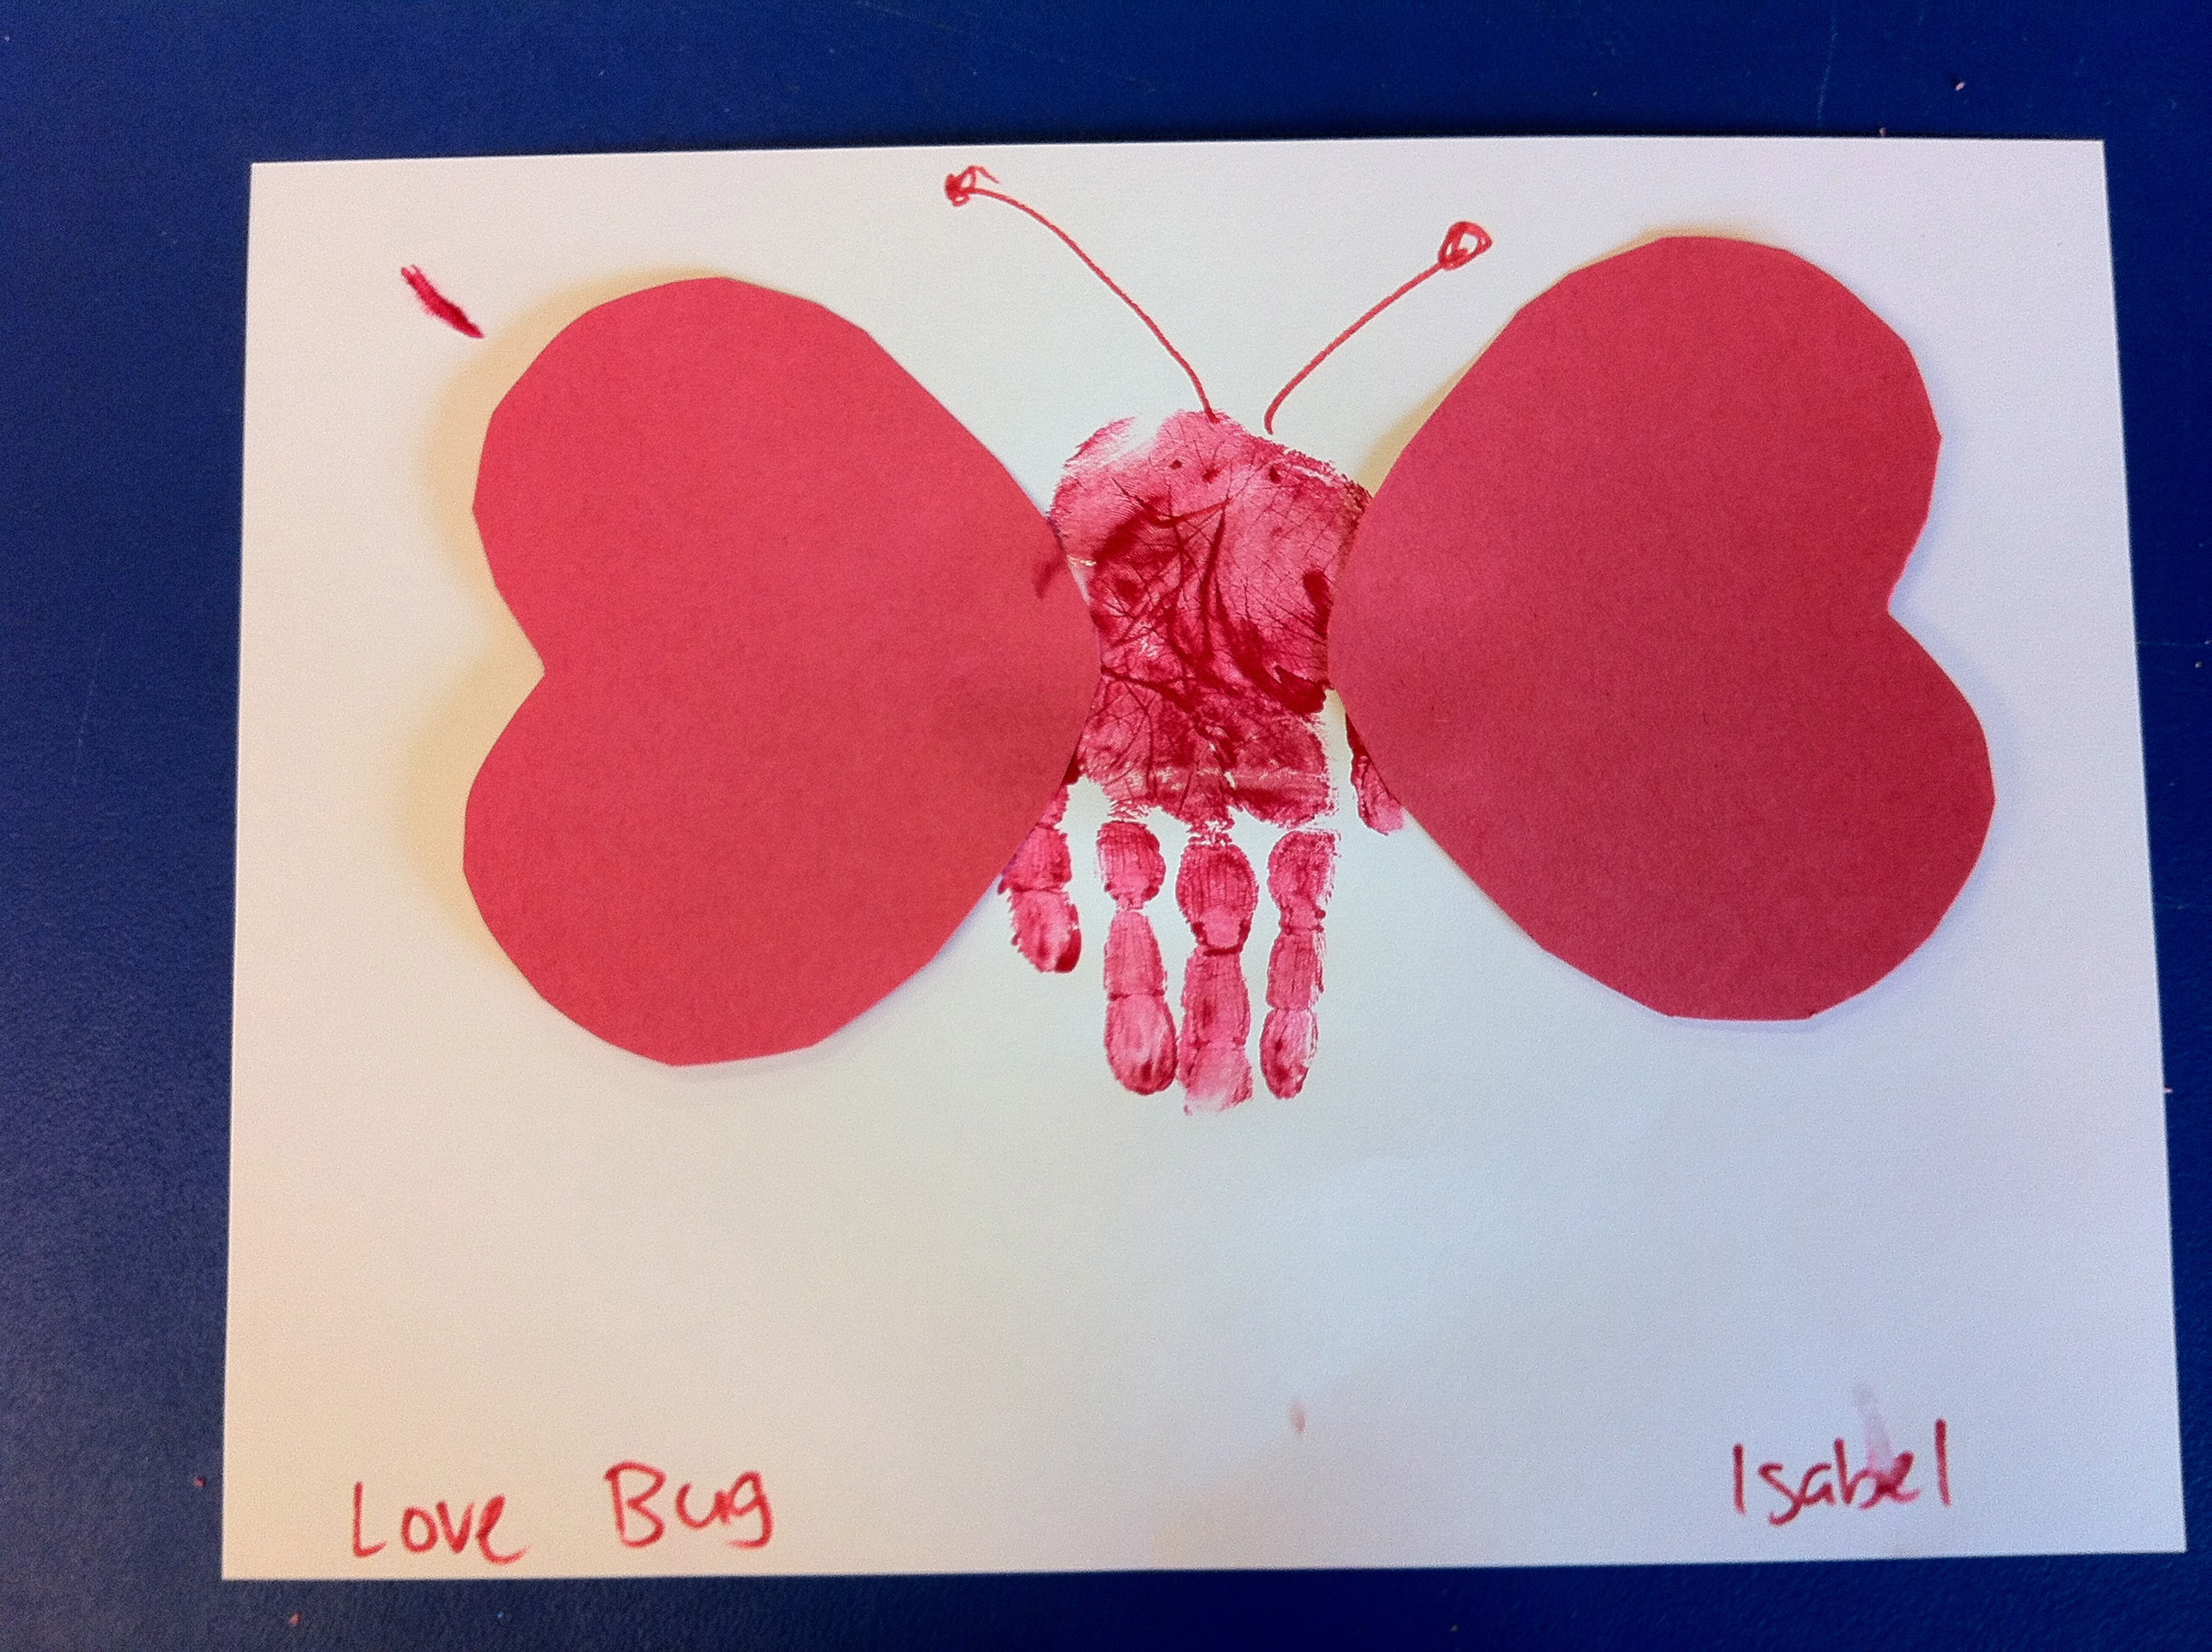 Best ideas about Valentine Arts And Crafts For Preschoolers . Save or Pin Preschool Crafts for Kids Valentine s Day Hand Print Now.